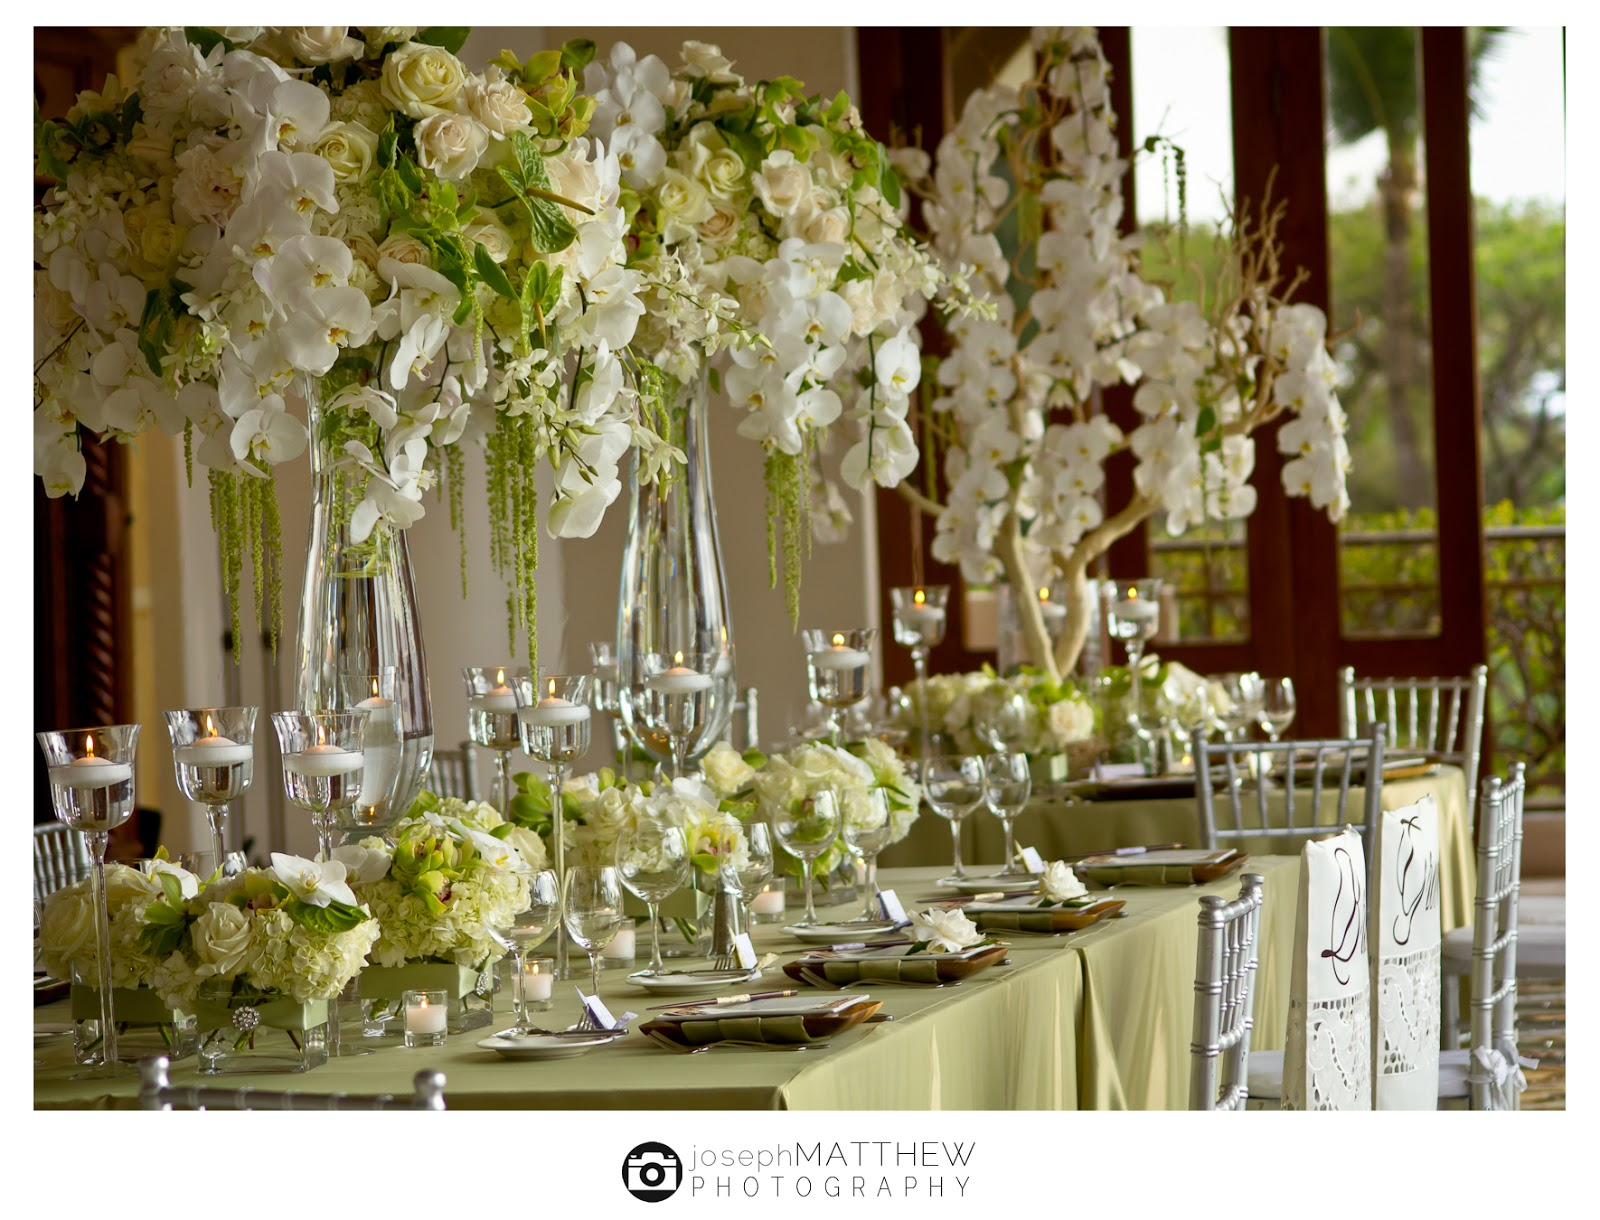 Planning a Wedding: What to Ask your Florist